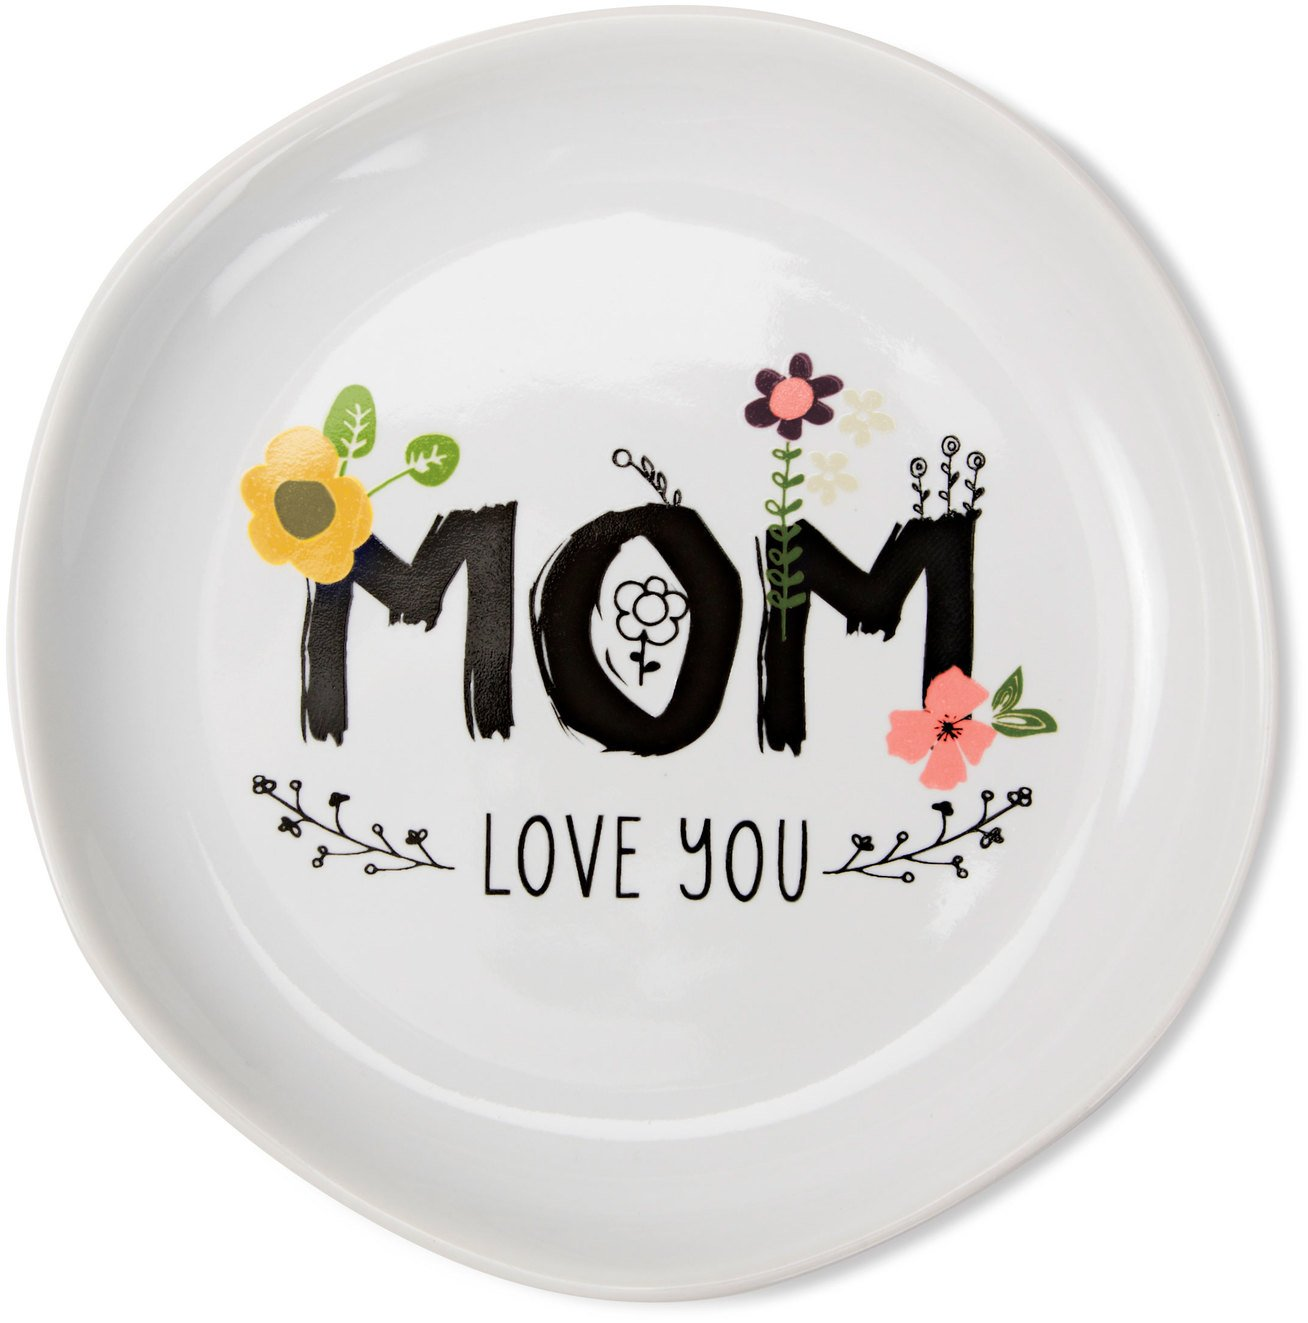 Love You More by Amylee Weeks Jewelry Dish Love You Mom Gift Packaging